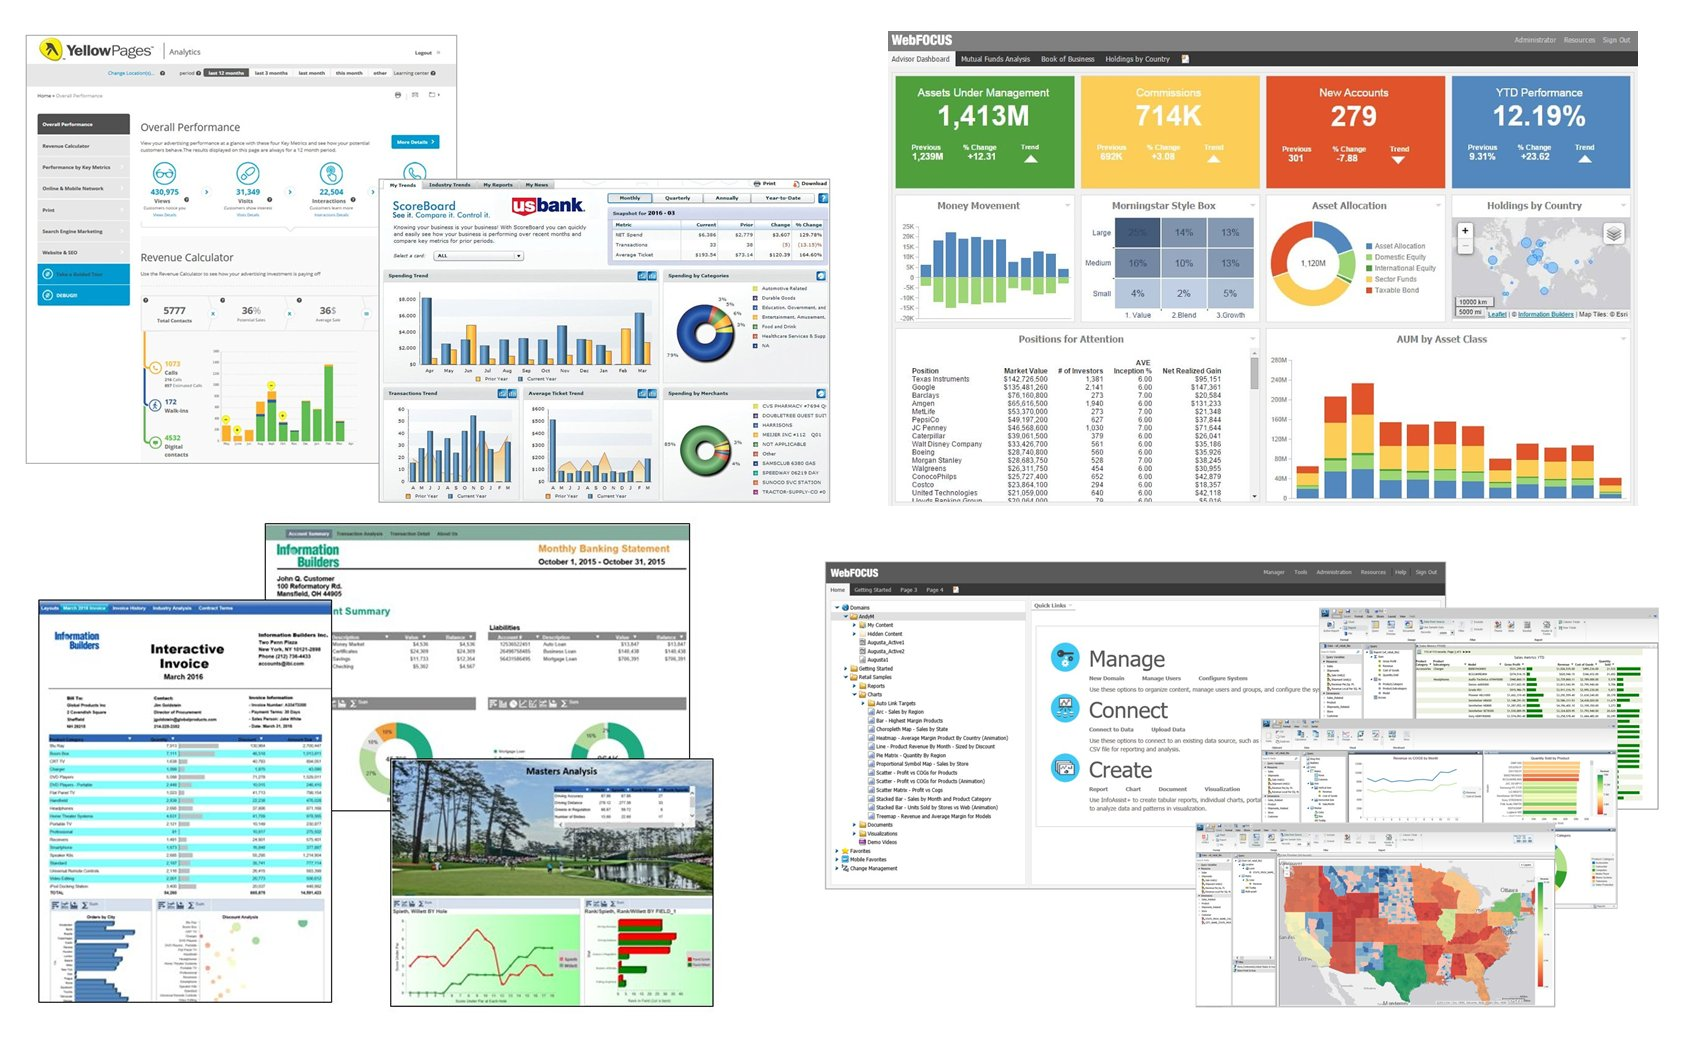 WebFOCUS BI and analytics